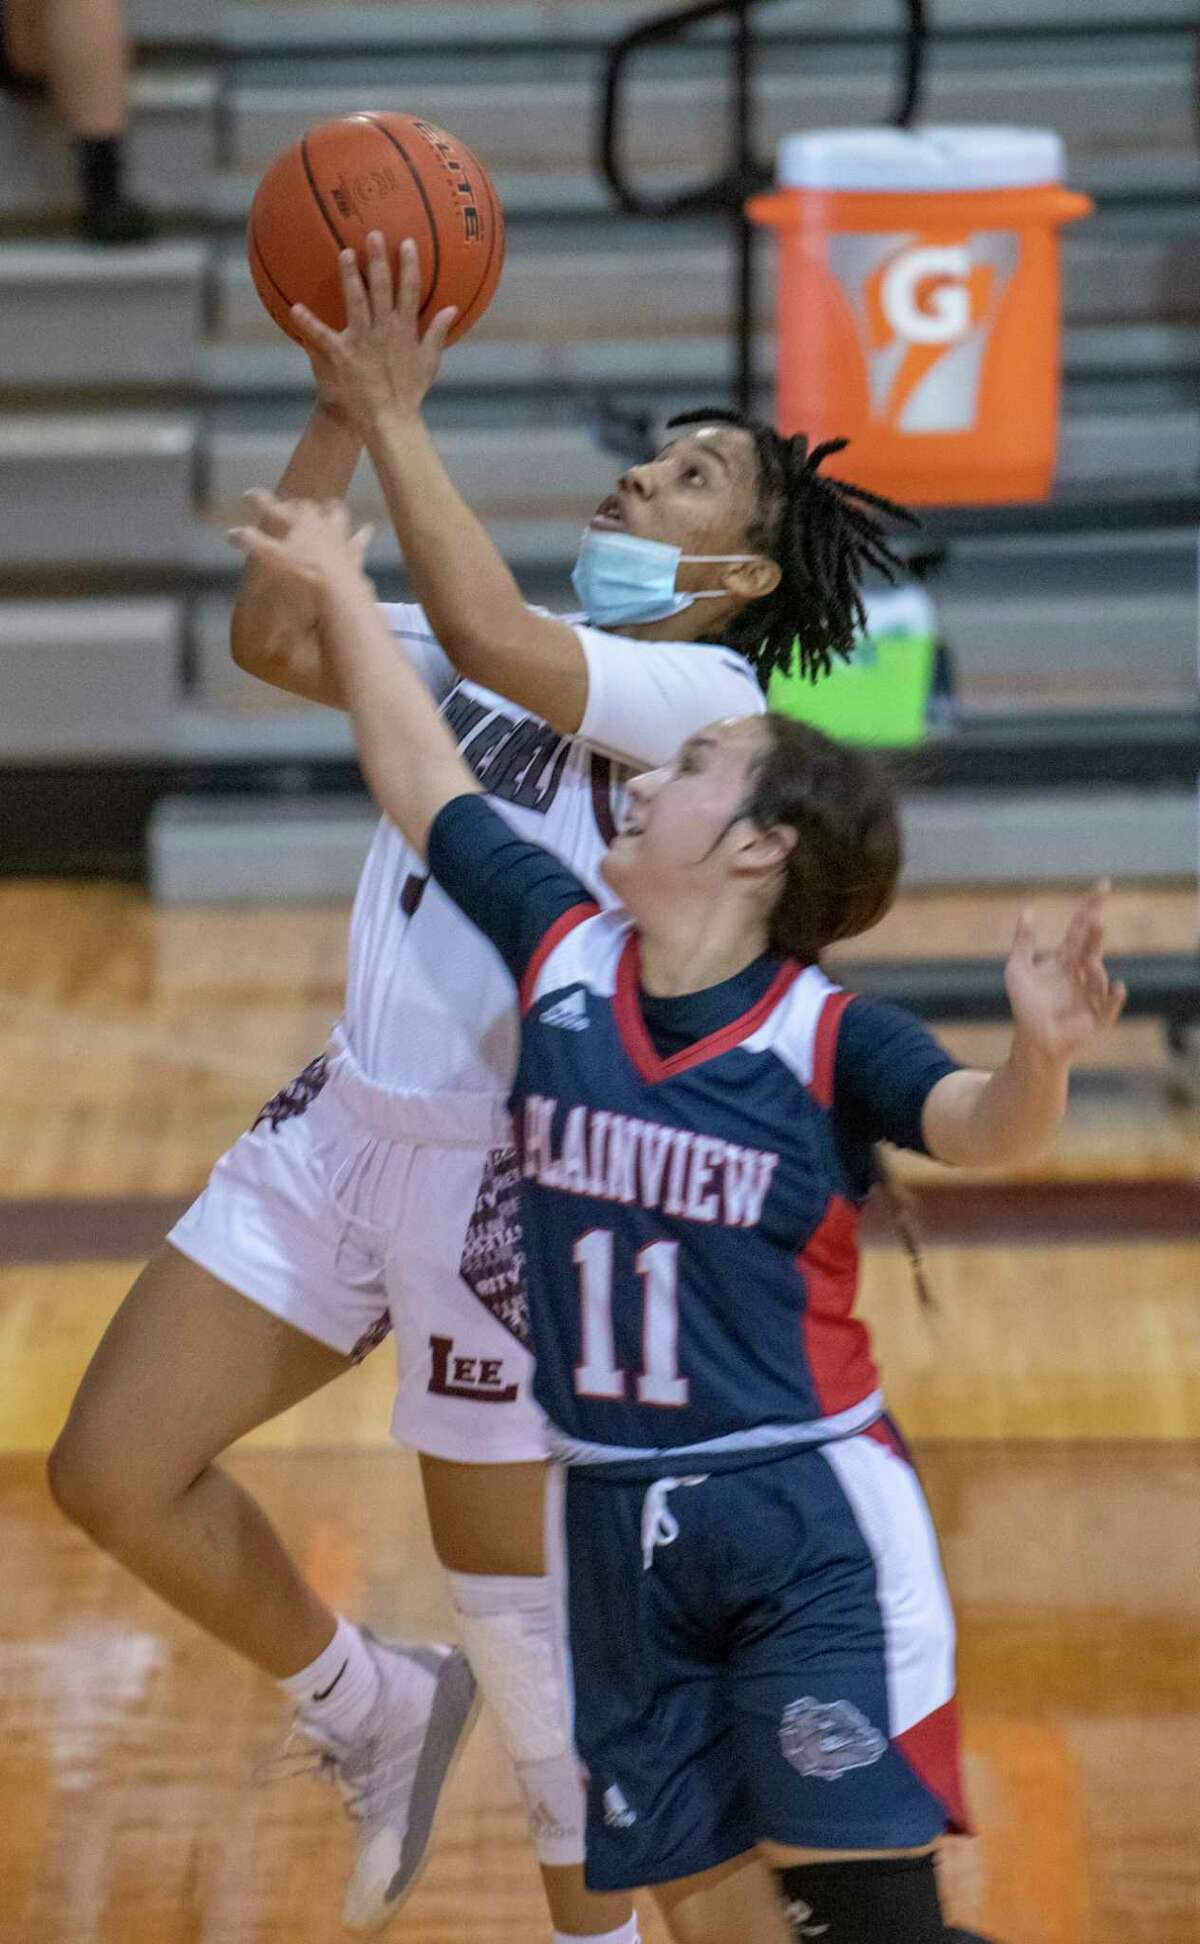 Lee High's Alyssa Green drives to the basket as Plainview's Emily Sigala defends 12/29/2020 at the Lee High gym. Tim Fischer/Reporter-Telegram